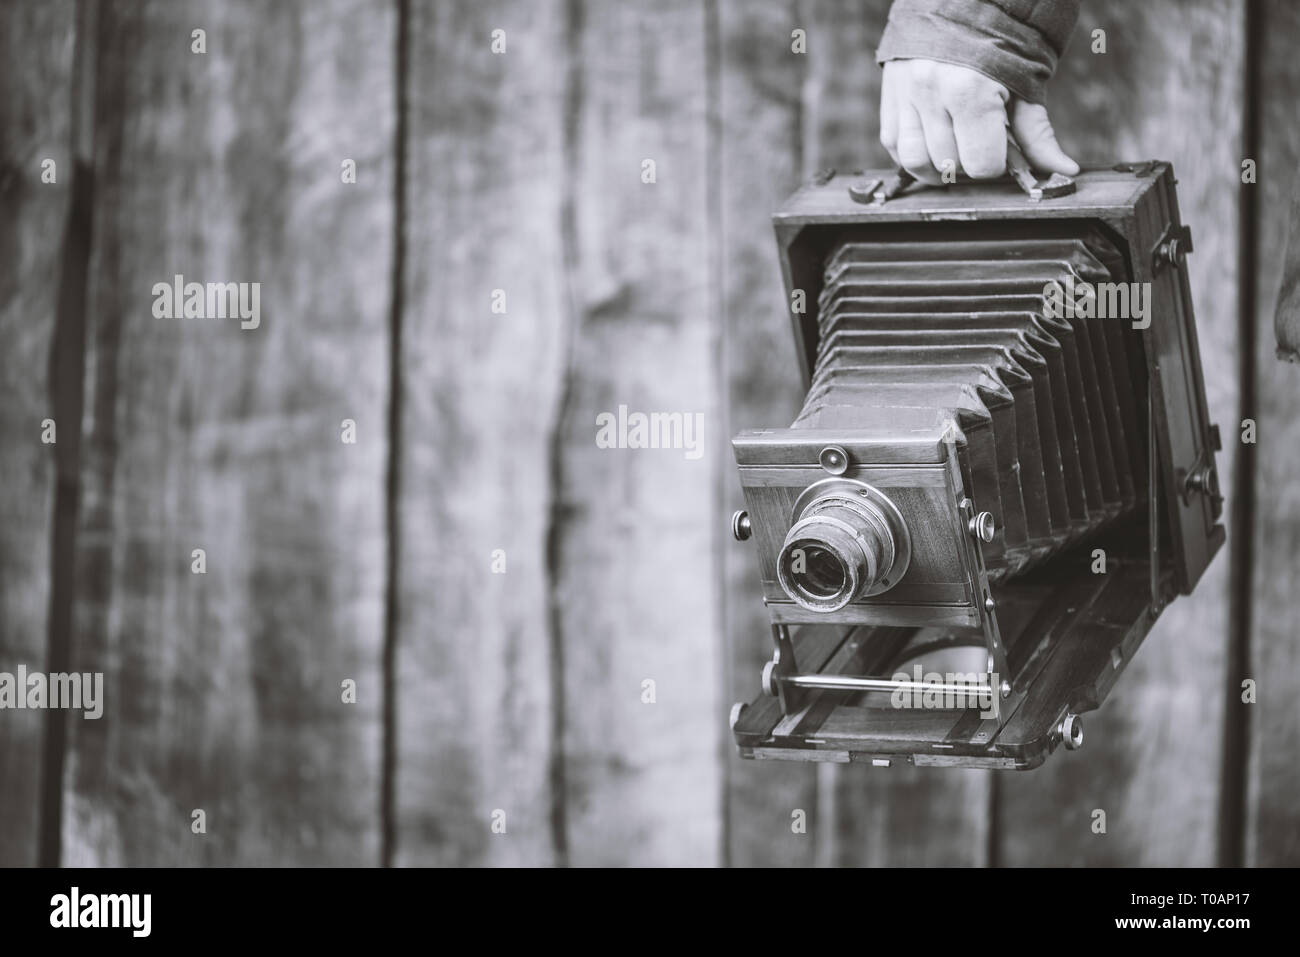 Large format retro camera, 5x7 inches. Photographer holds in hand old studio camera. Monochrome effect, copyspace. Concept - photography of the 1930s- - Stock Image